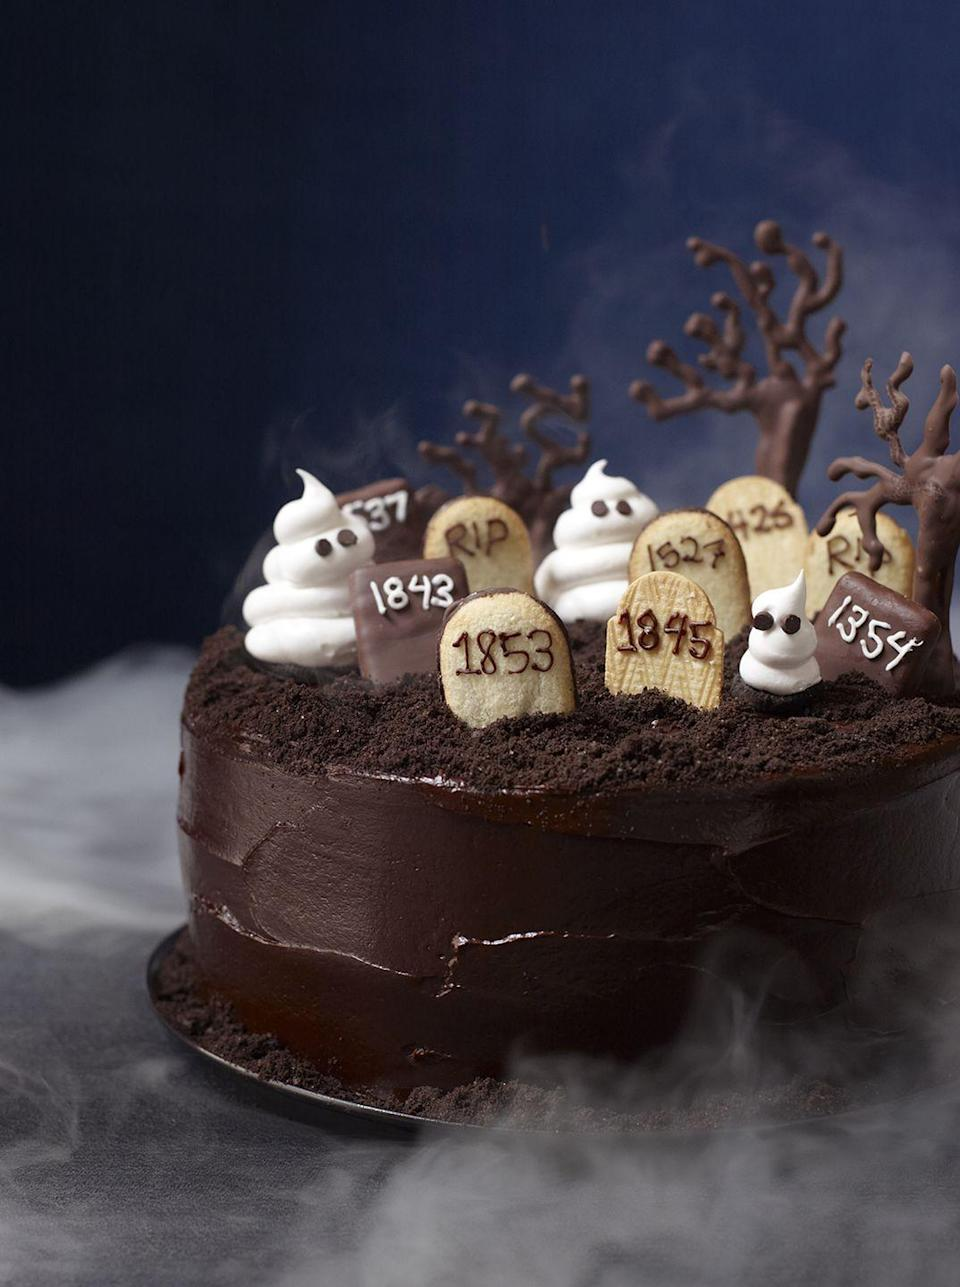 """<p>Espresso-tinged batter and bittersweet chocolate frosting? This cake may look scary but it sure is delicious. </p><p><em><a href=""""https://www.womansday.com/food-recipes/food-drinks/recipes/a11822/graveyard-cake-recipe-123437/"""" rel=""""nofollow noopener"""" target=""""_blank"""" data-ylk=""""slk:Get the Graveyard Cake recipe."""" class=""""link rapid-noclick-resp""""><strong>Get the Graveyard Cake recipe. </strong></a></em></p>"""